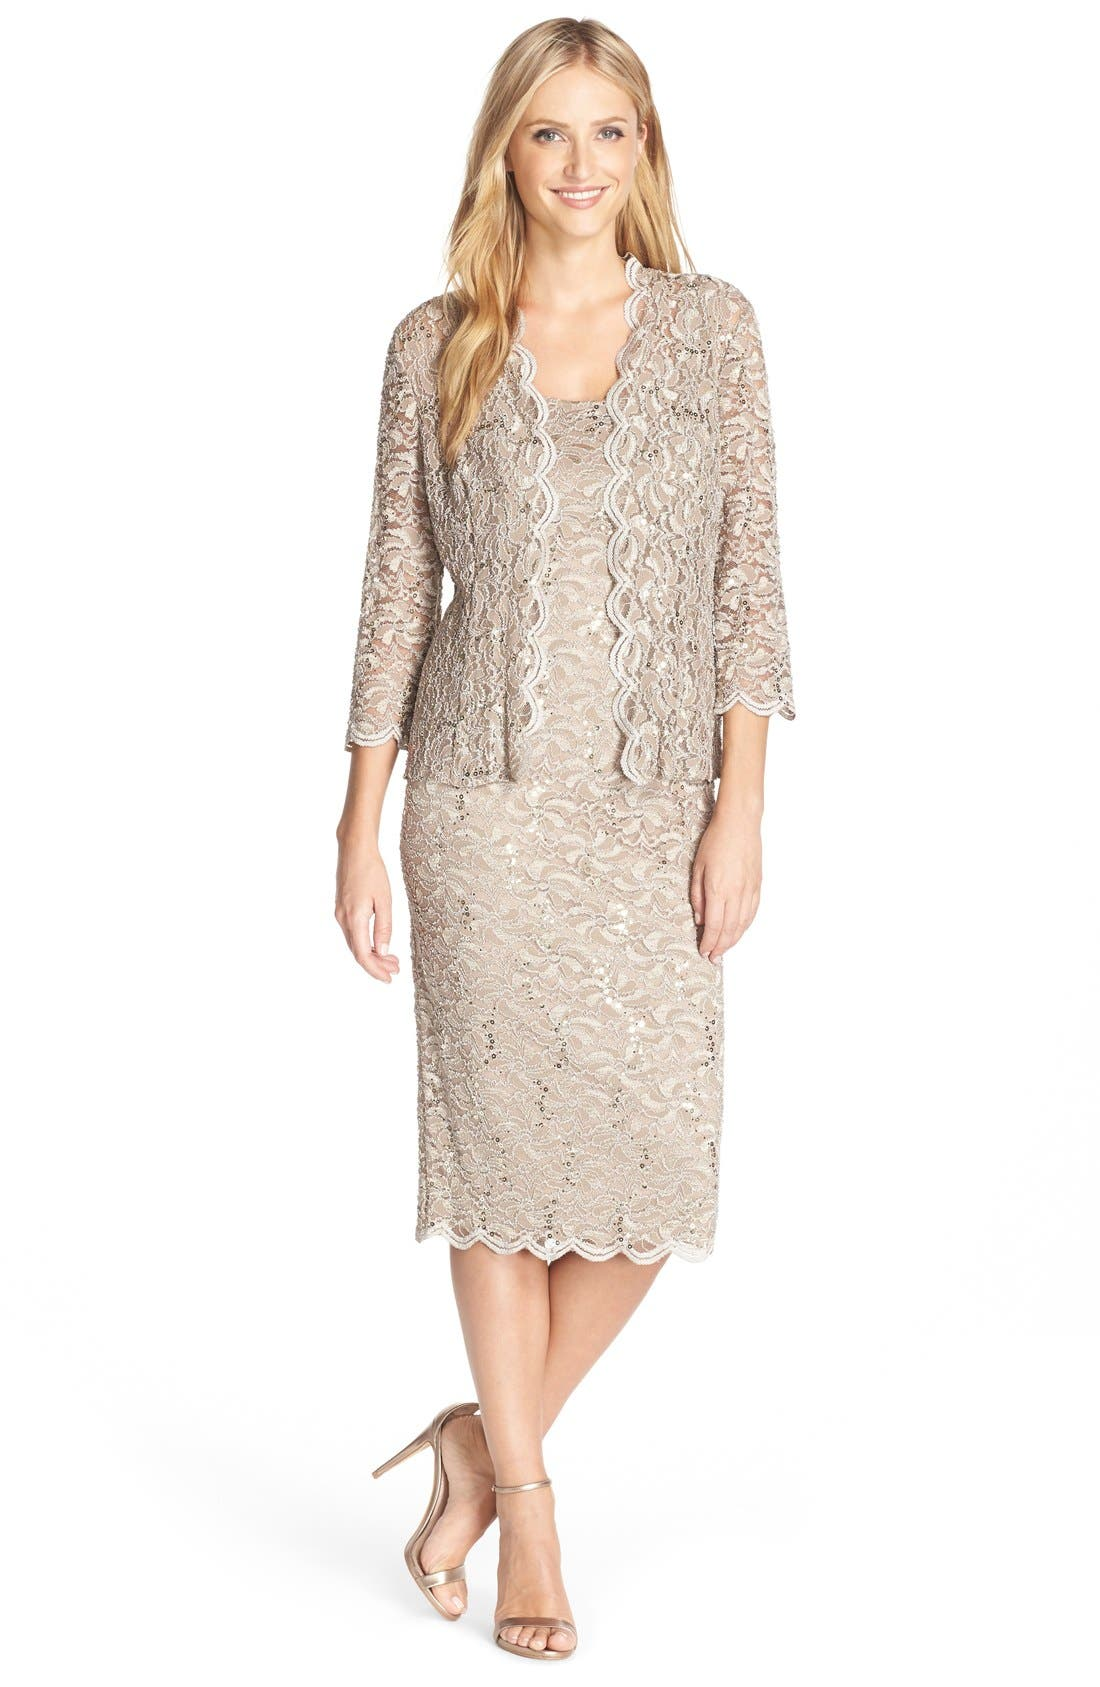 ALEX EVENINGS, Lace Dress & Jacket, Main thumbnail 1, color, CHAMPAGNE